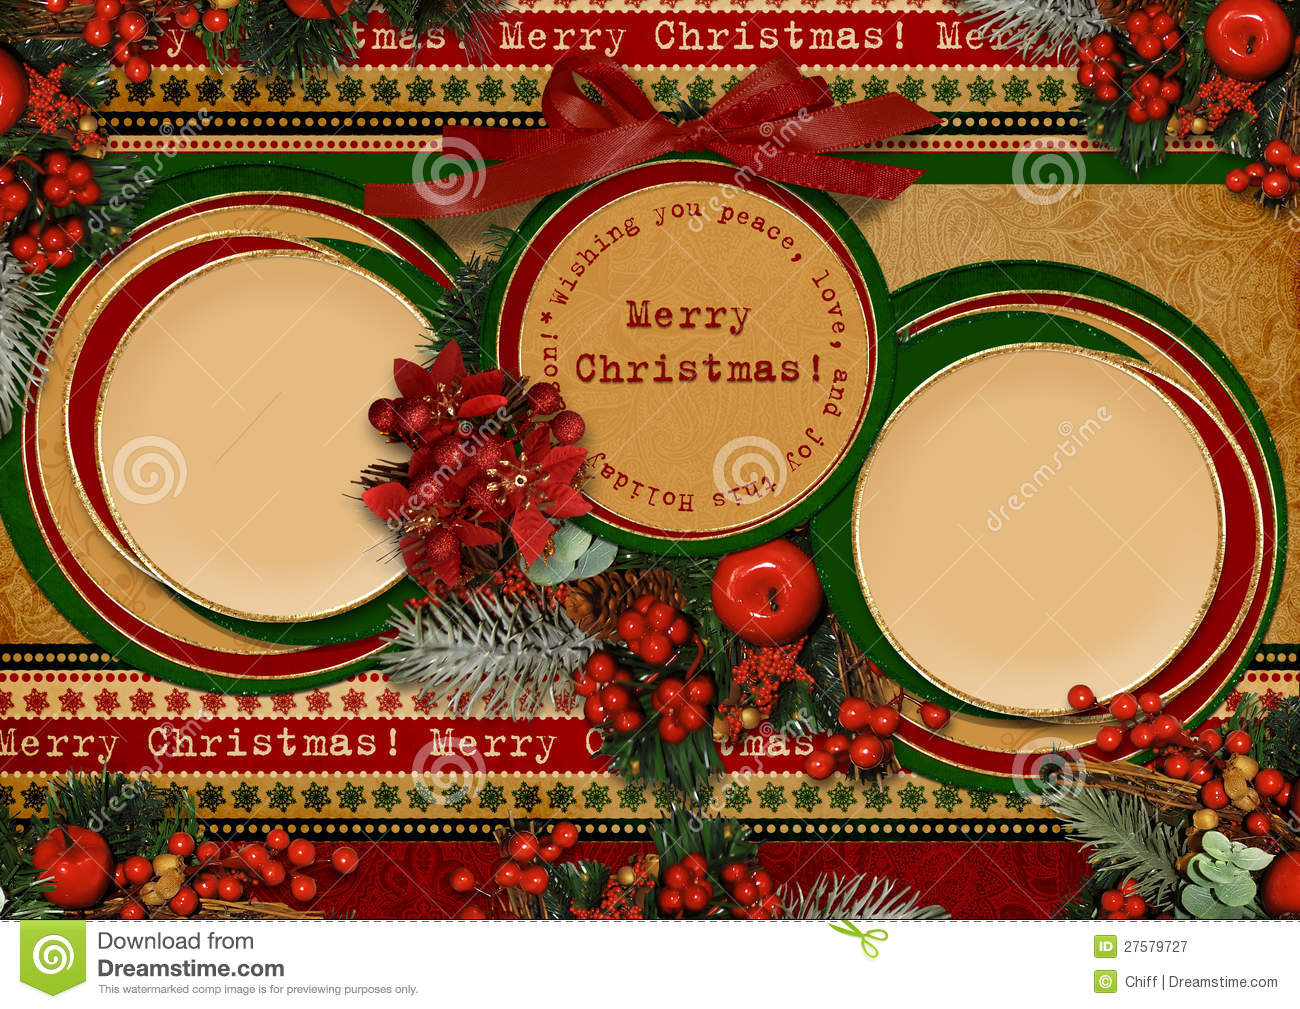 Vintage Christmas Card With Circle Frame Royalty Free Stock ...